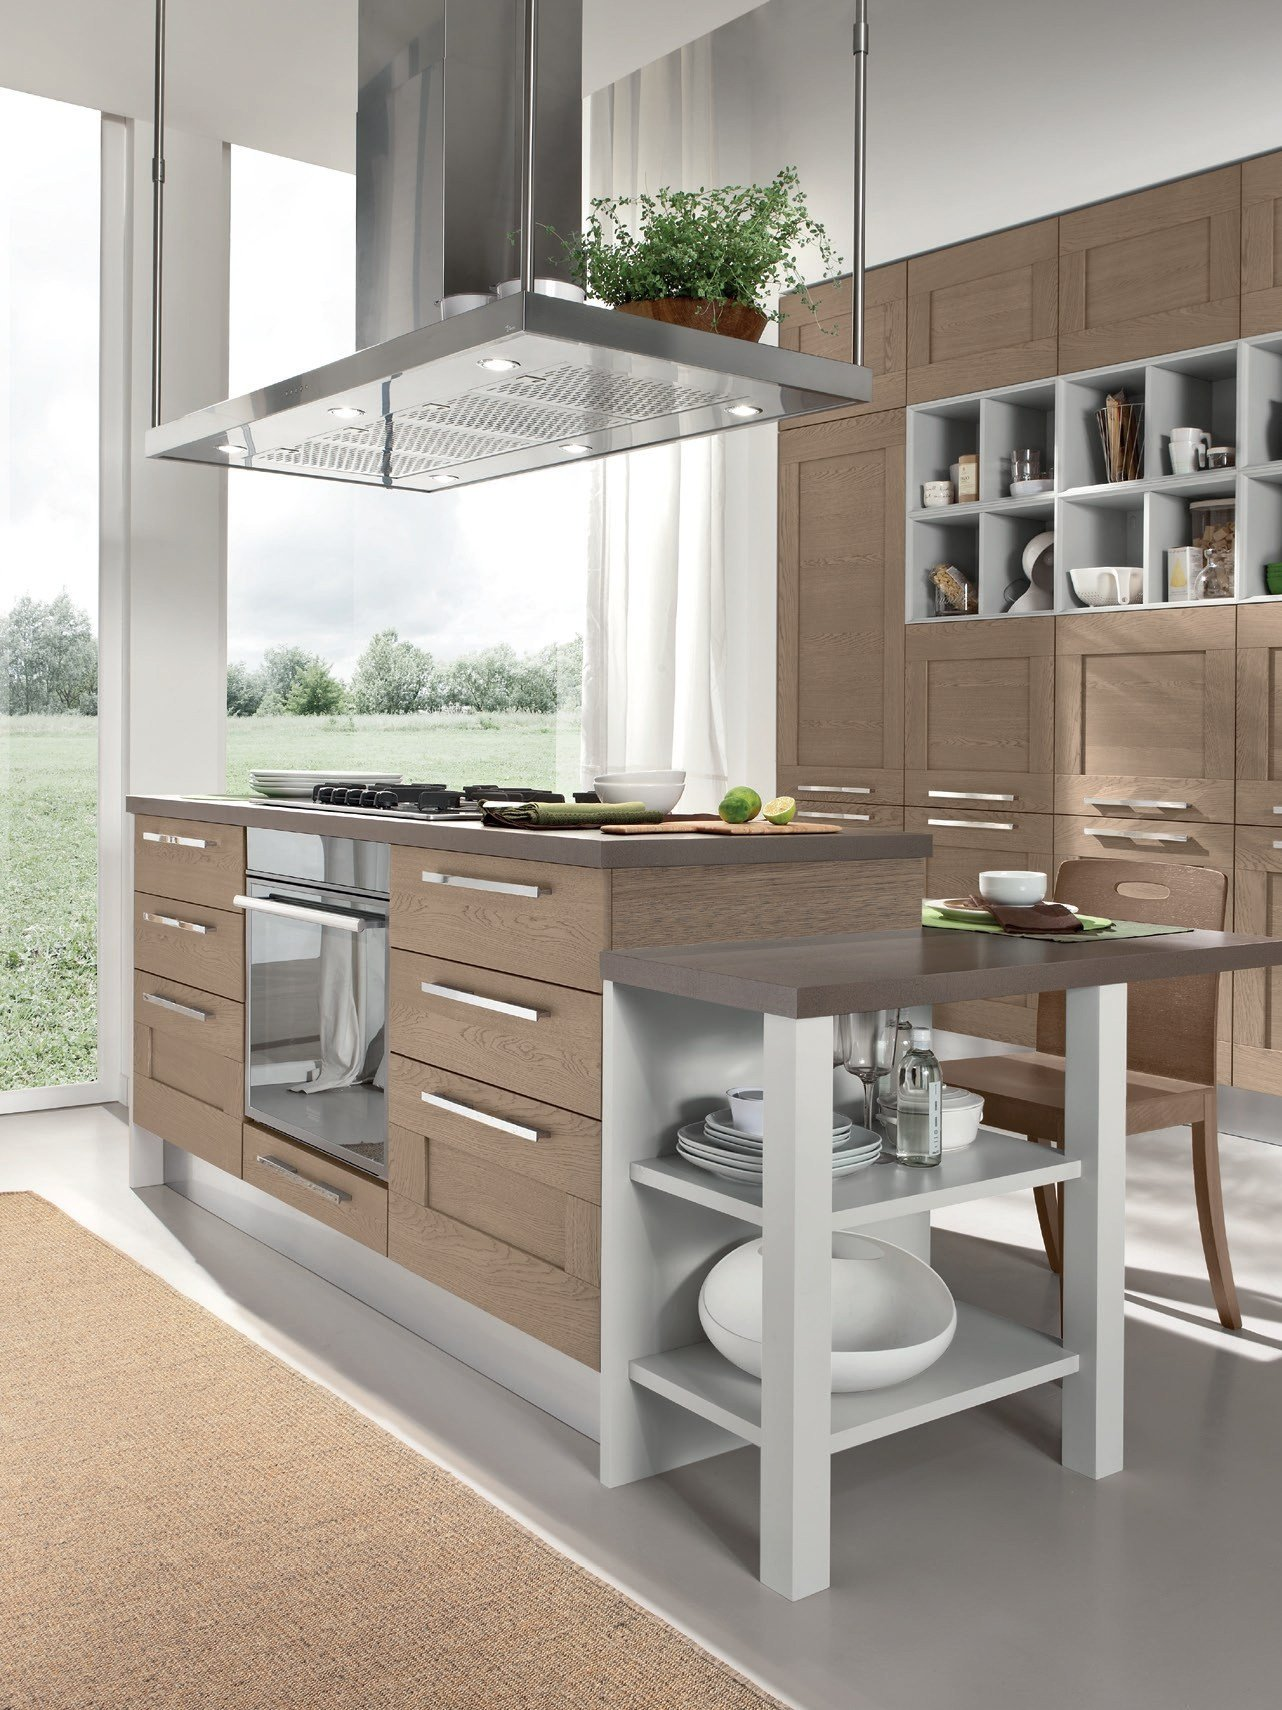 gallery kitchen by cucine lube